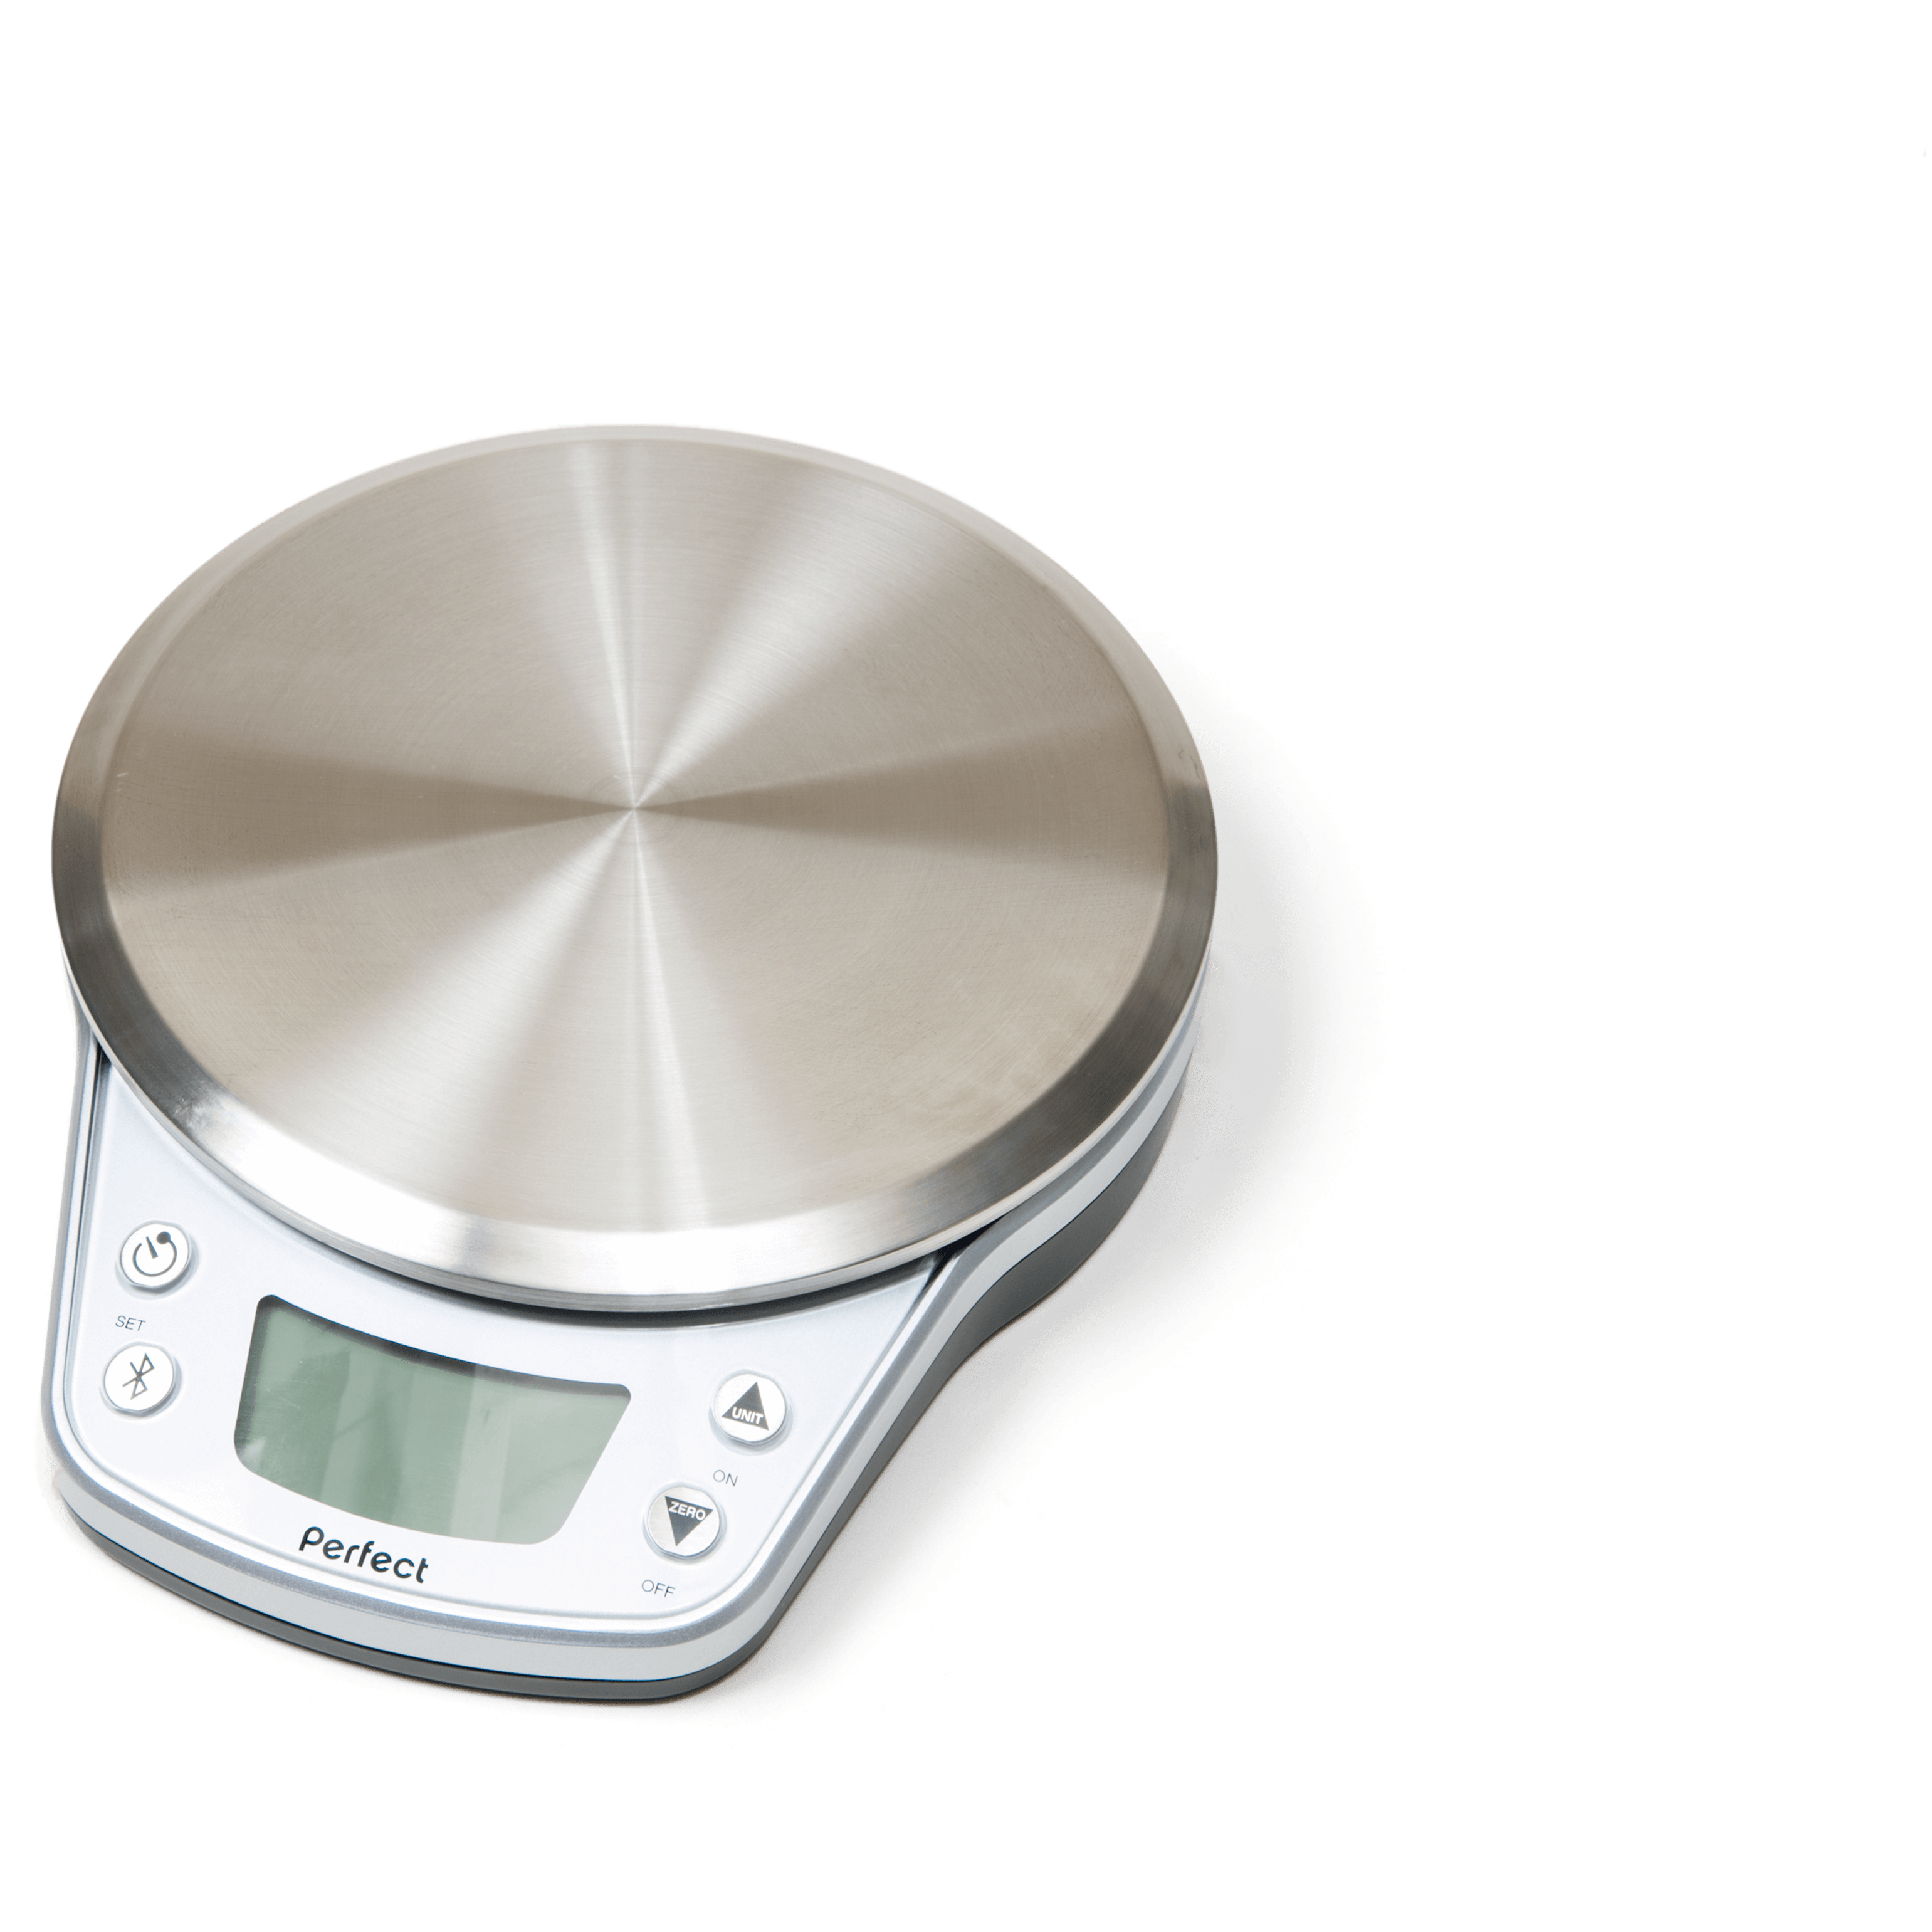 The Best Smart Scales | Cook\'s Illustrated